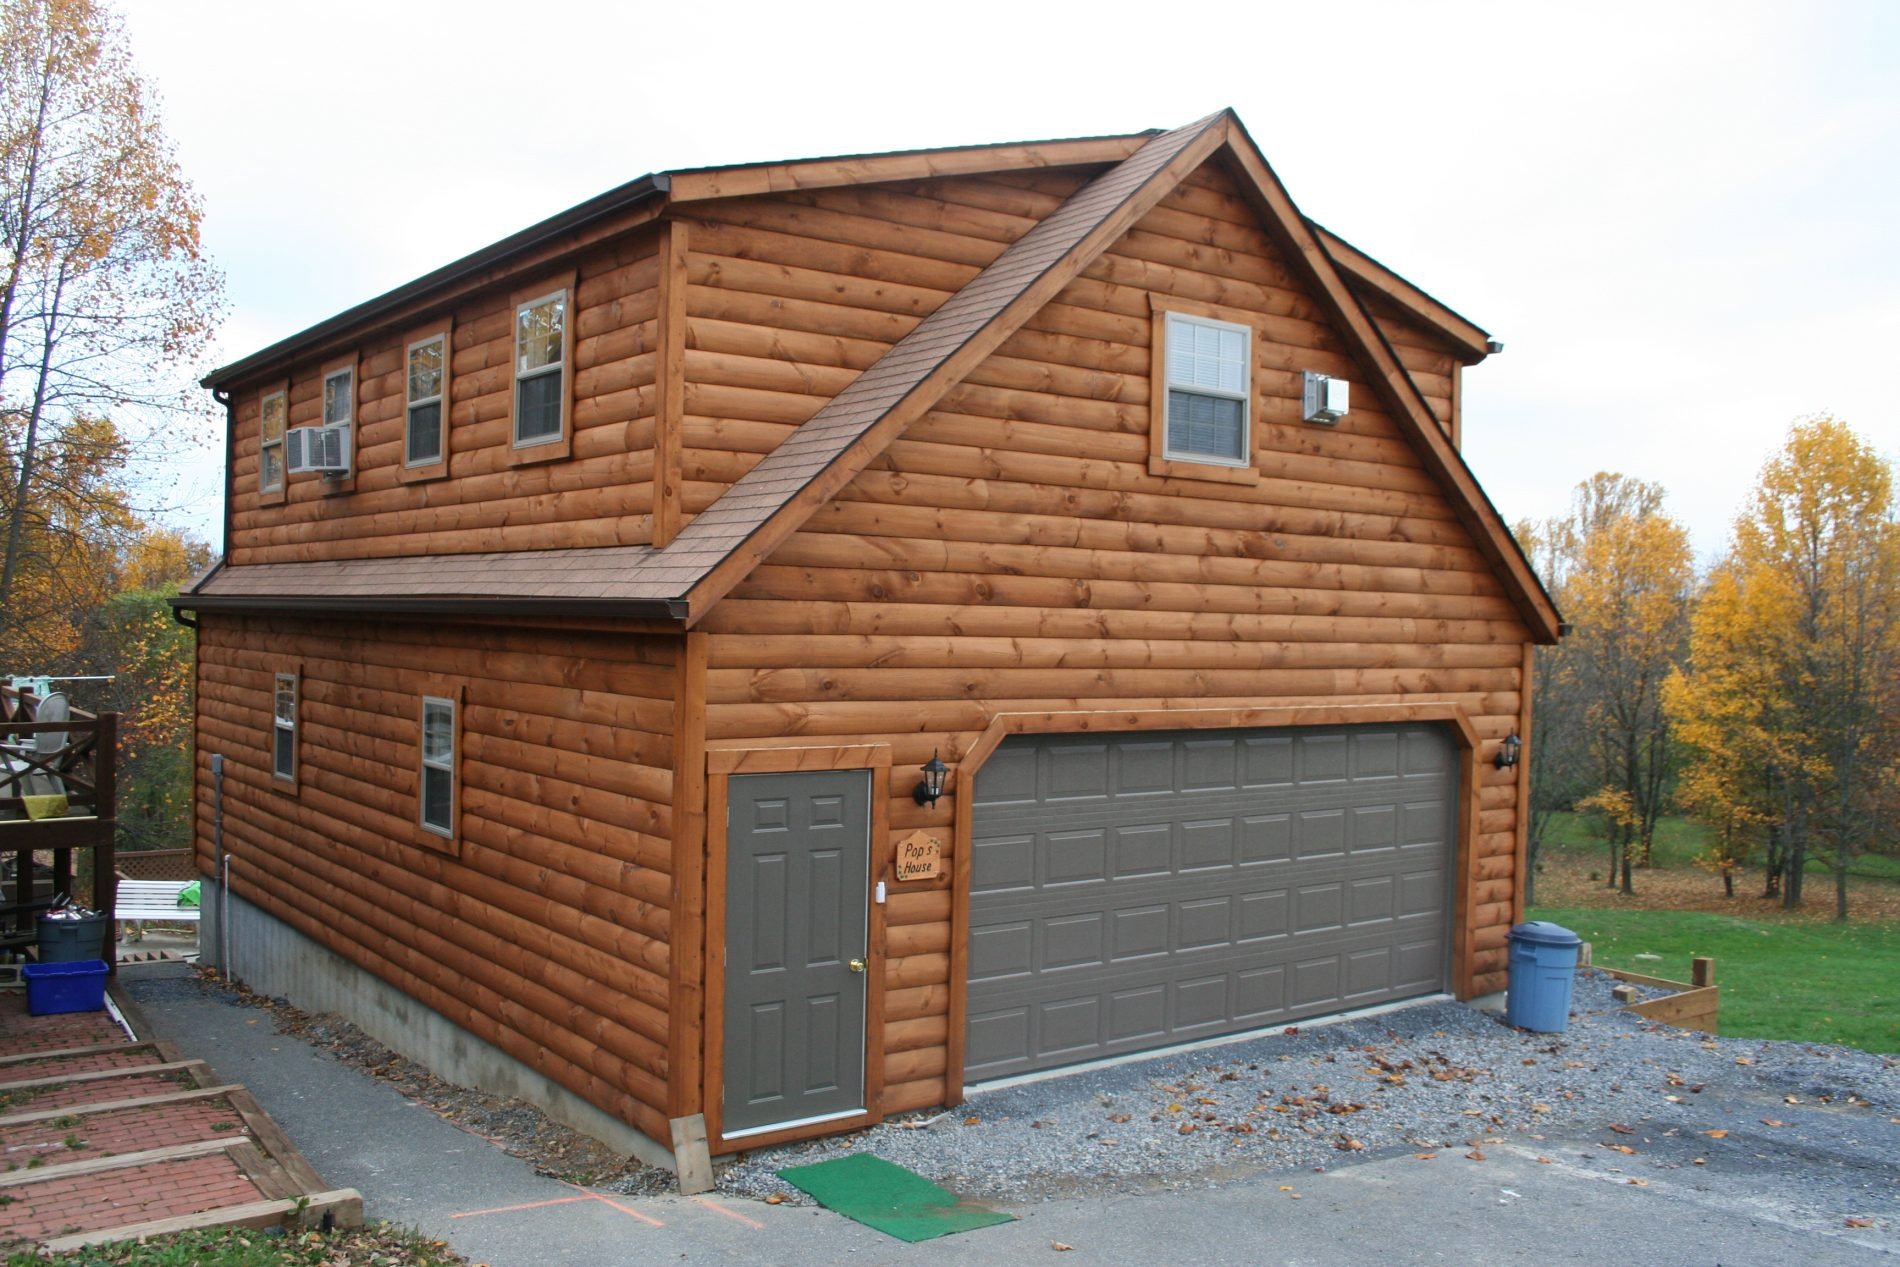 Custom garage builders prefab garages for sale zook cabins for Mobile home garage kits